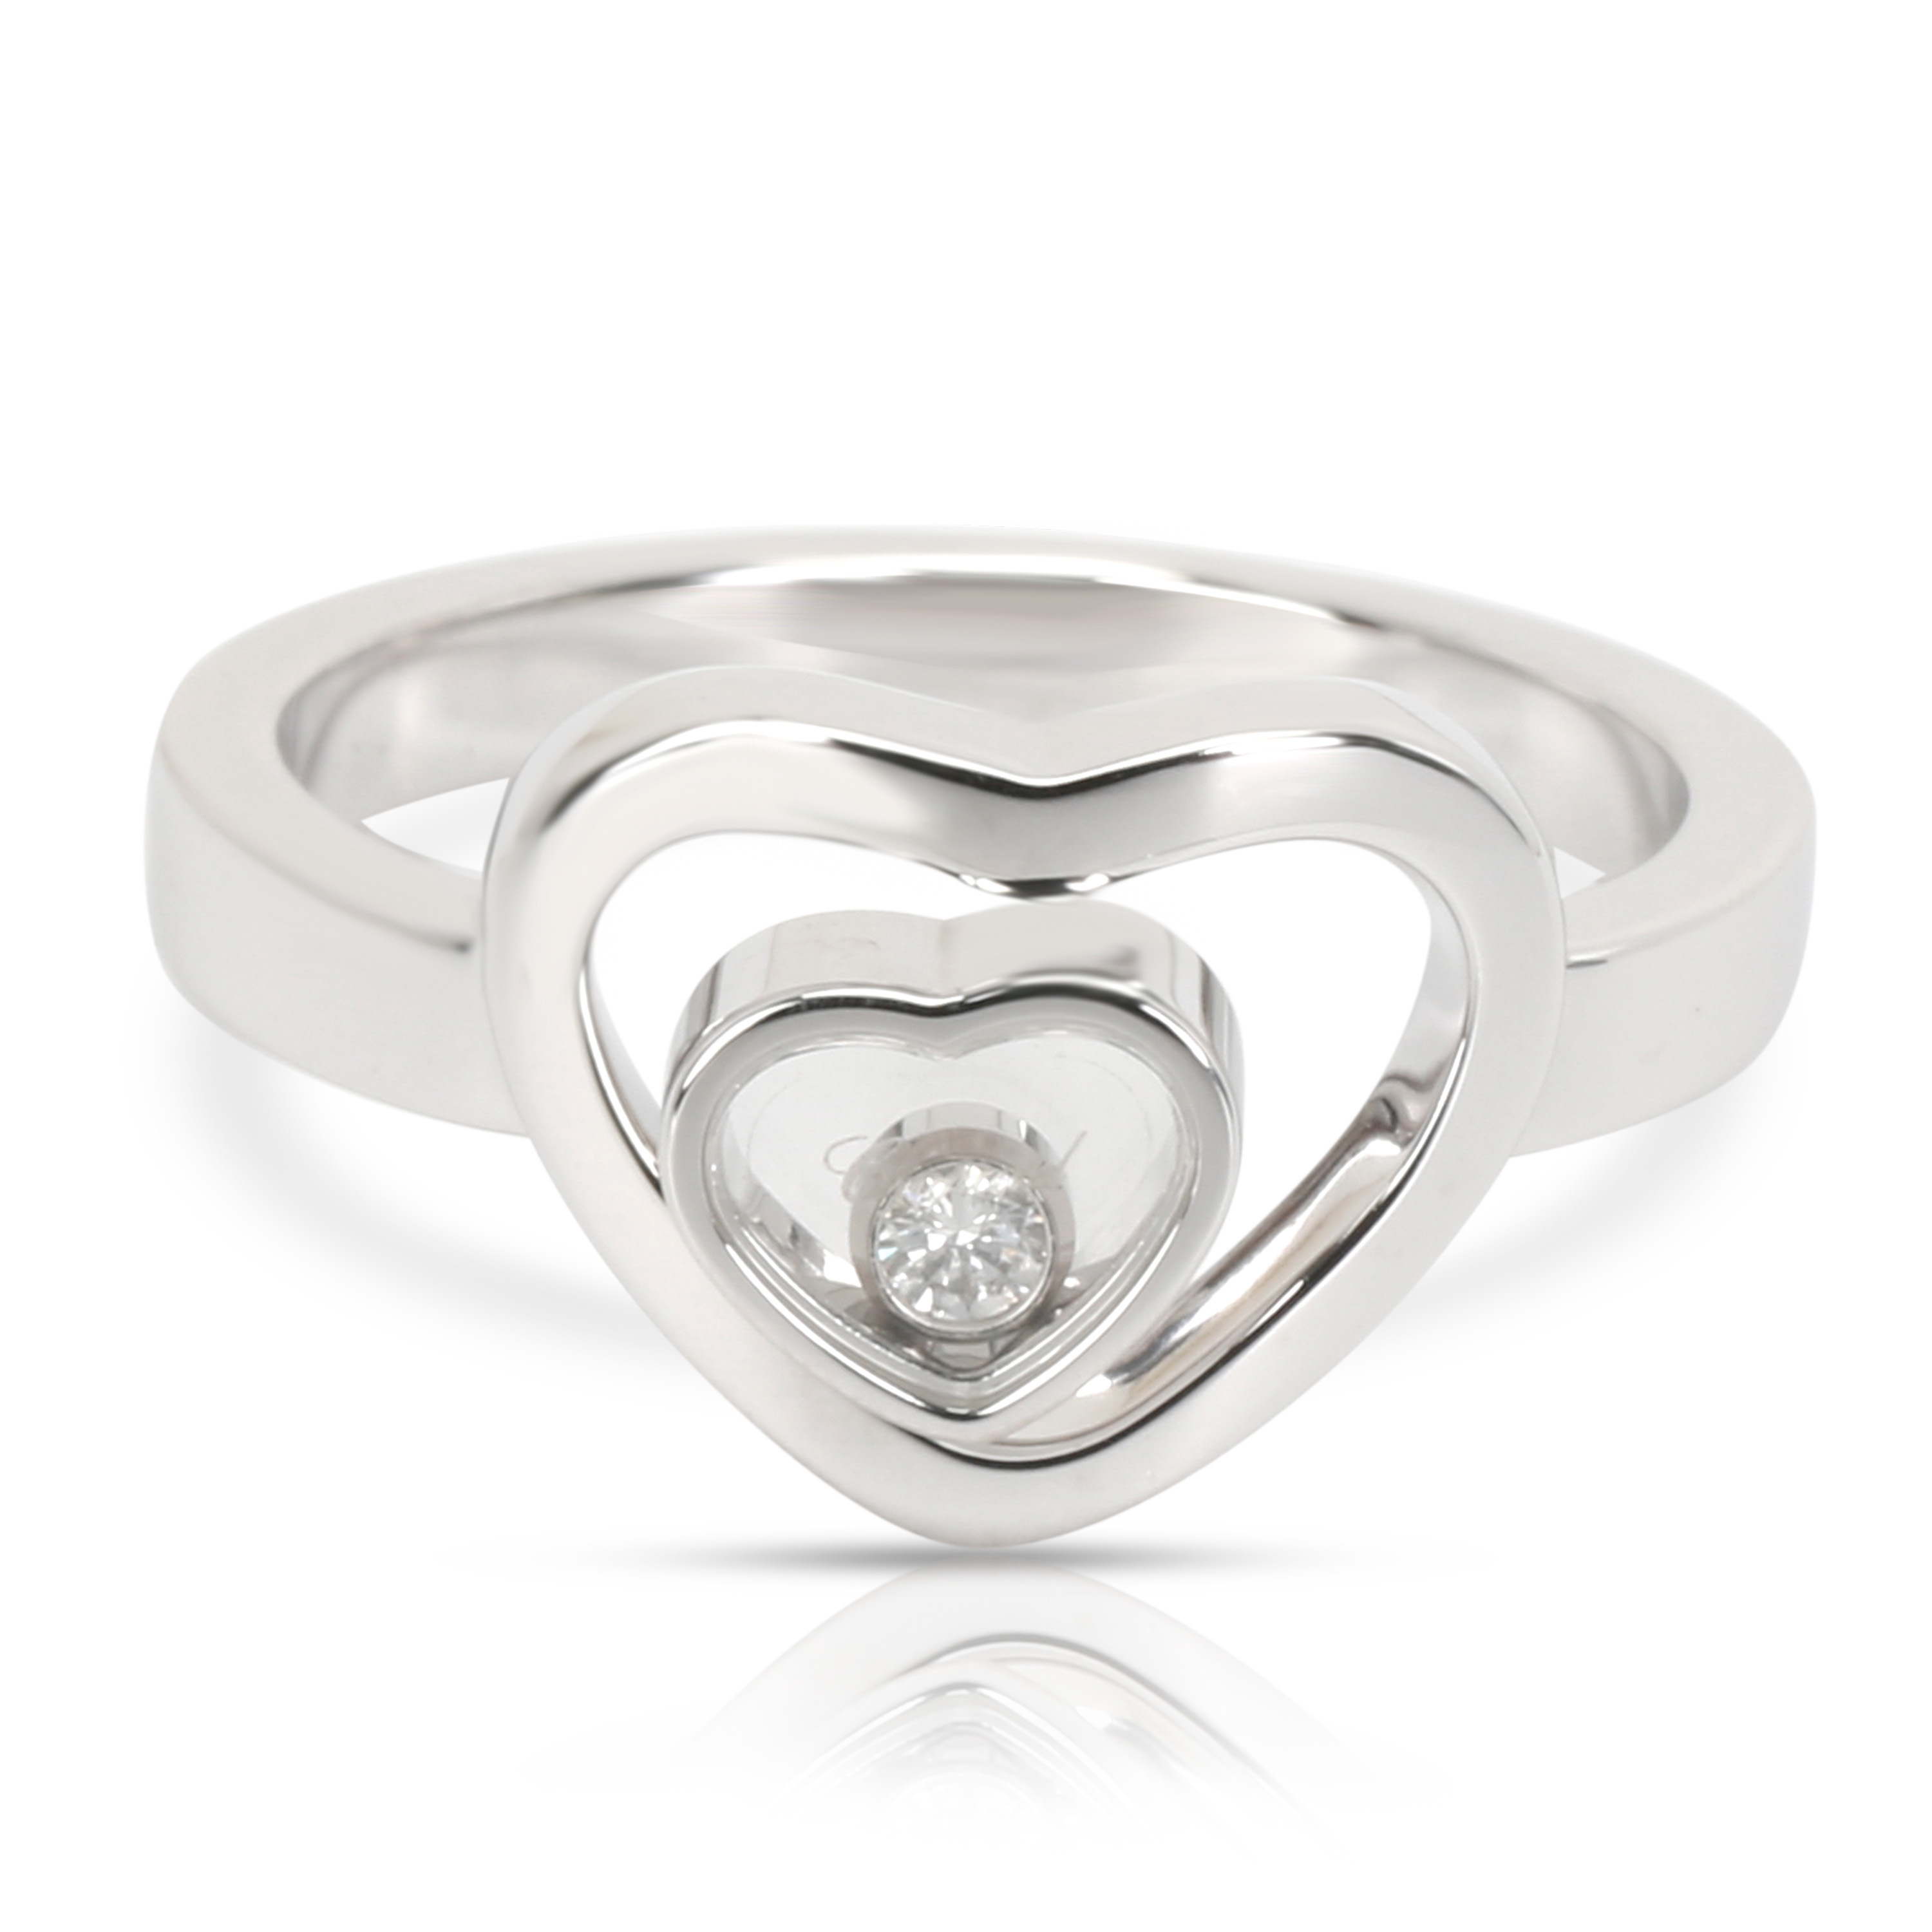 71a5a712cd4a1 Chopard Happy Diamonds Double Heart Ring in 18K White Gold 0.05 CTW ...